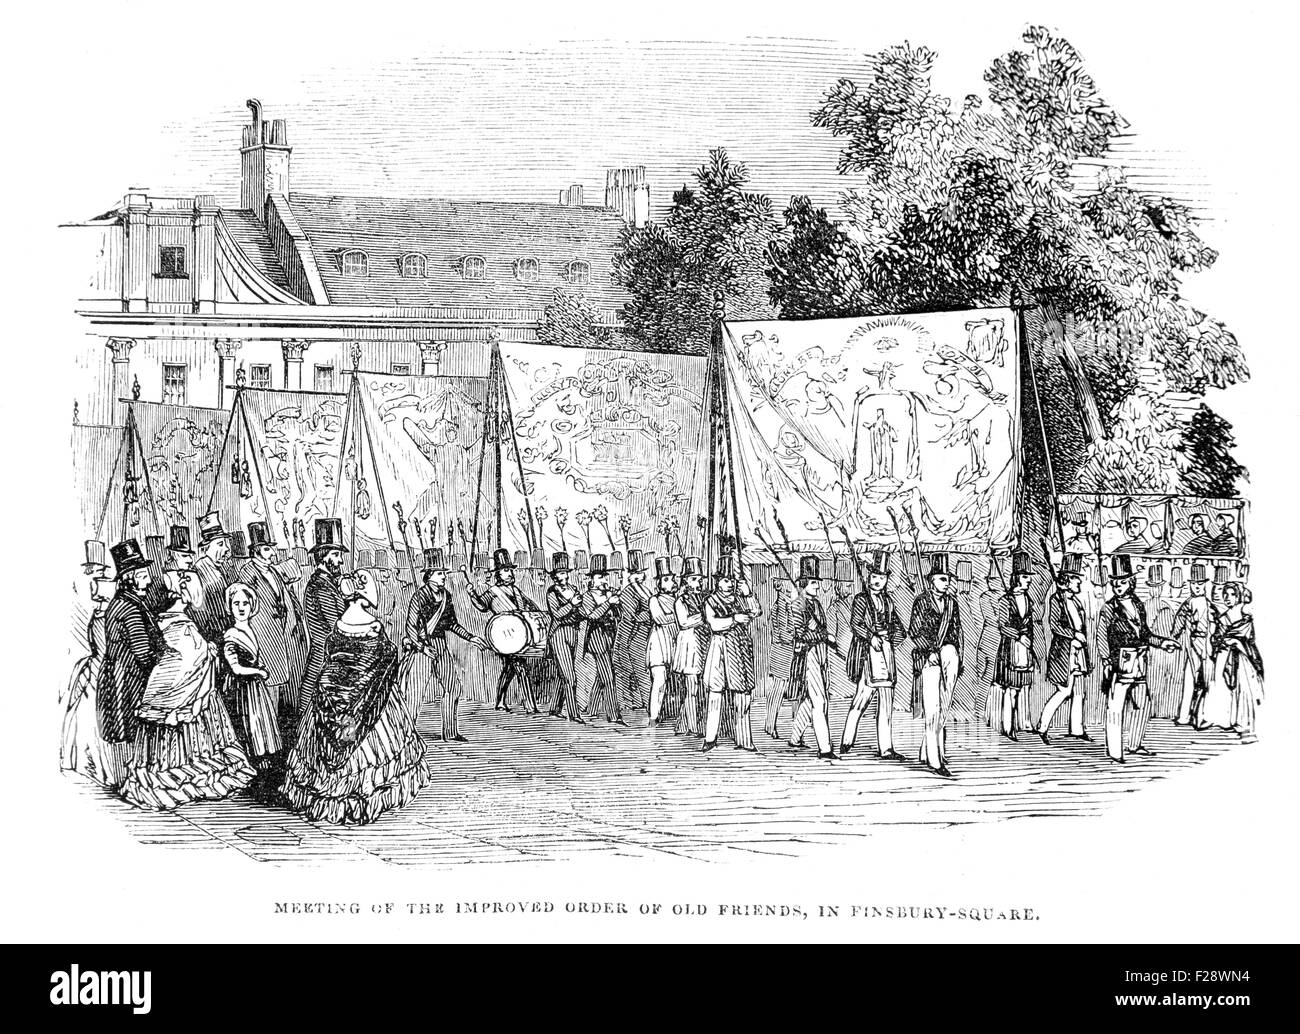 Meeting of the Improved Order of Old Friends in Finsbury Square, Illustrated London News July 1844; Black and White - Stock Image